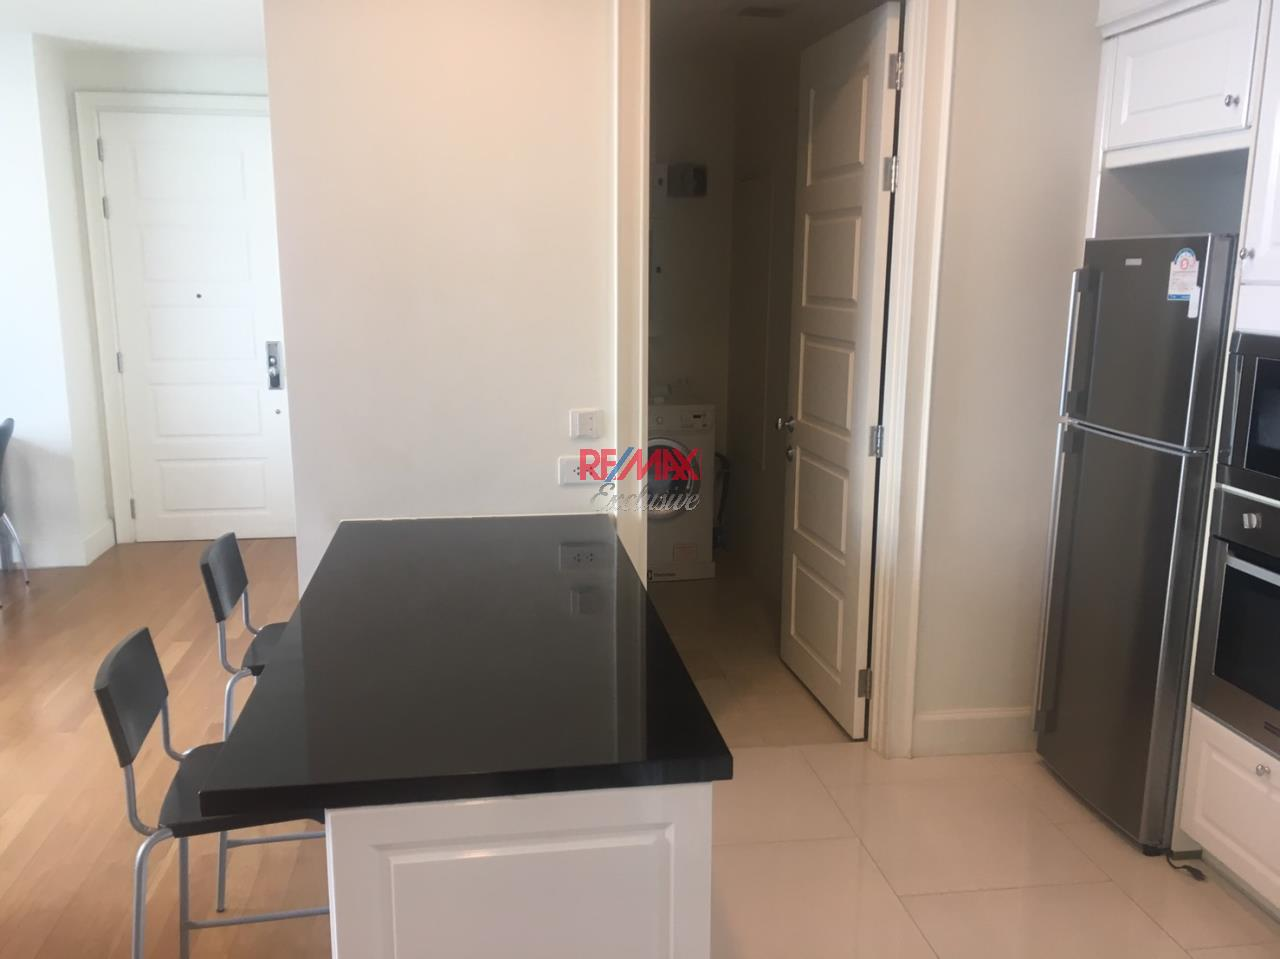 RE/MAX Exclusive Agency's Royce Private Residence, 3 Bedroom 142 Sqm. for Rent and Sale 3